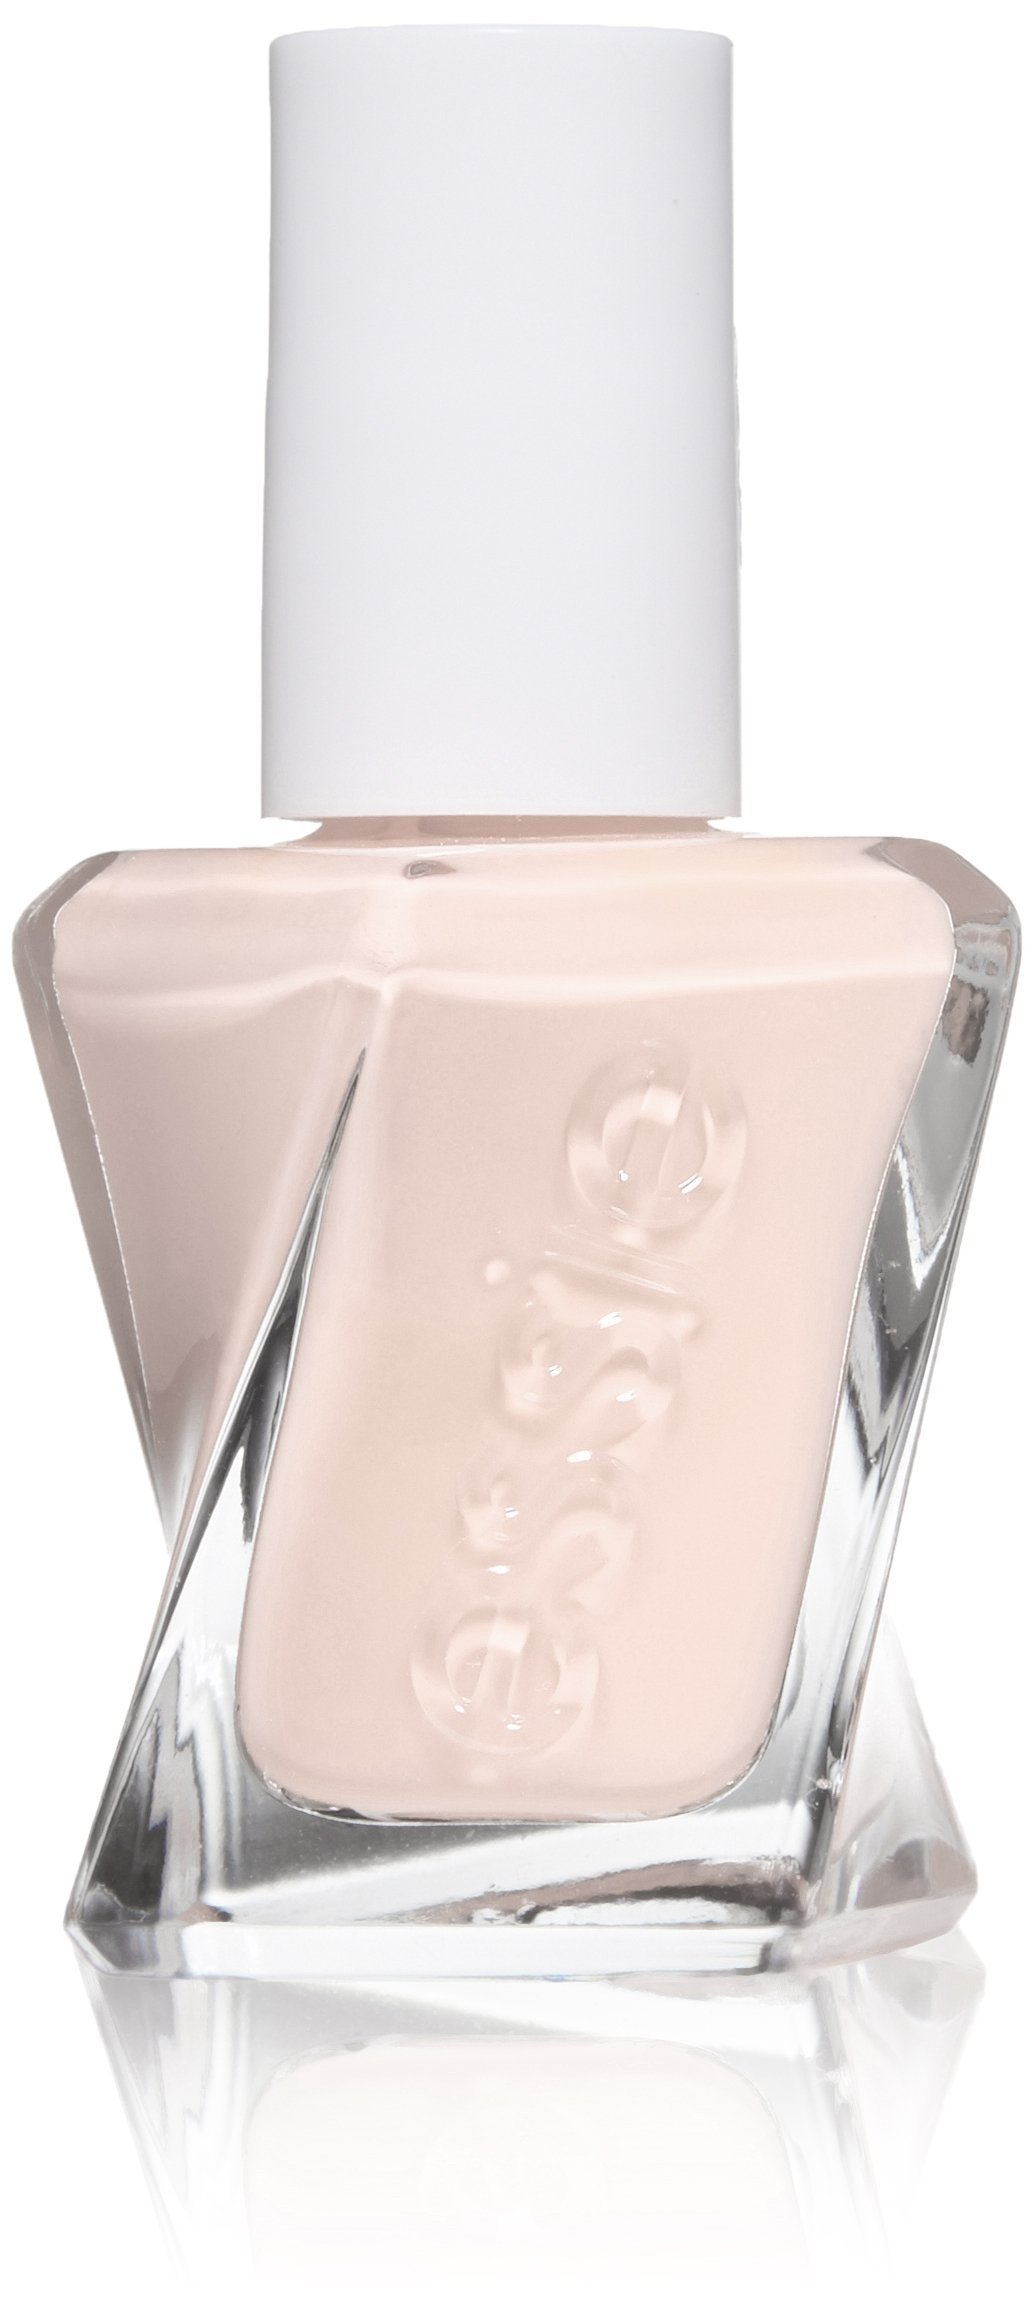 Amazon.com : essie gel couture nail polish, sheer fantasy, sheer ...